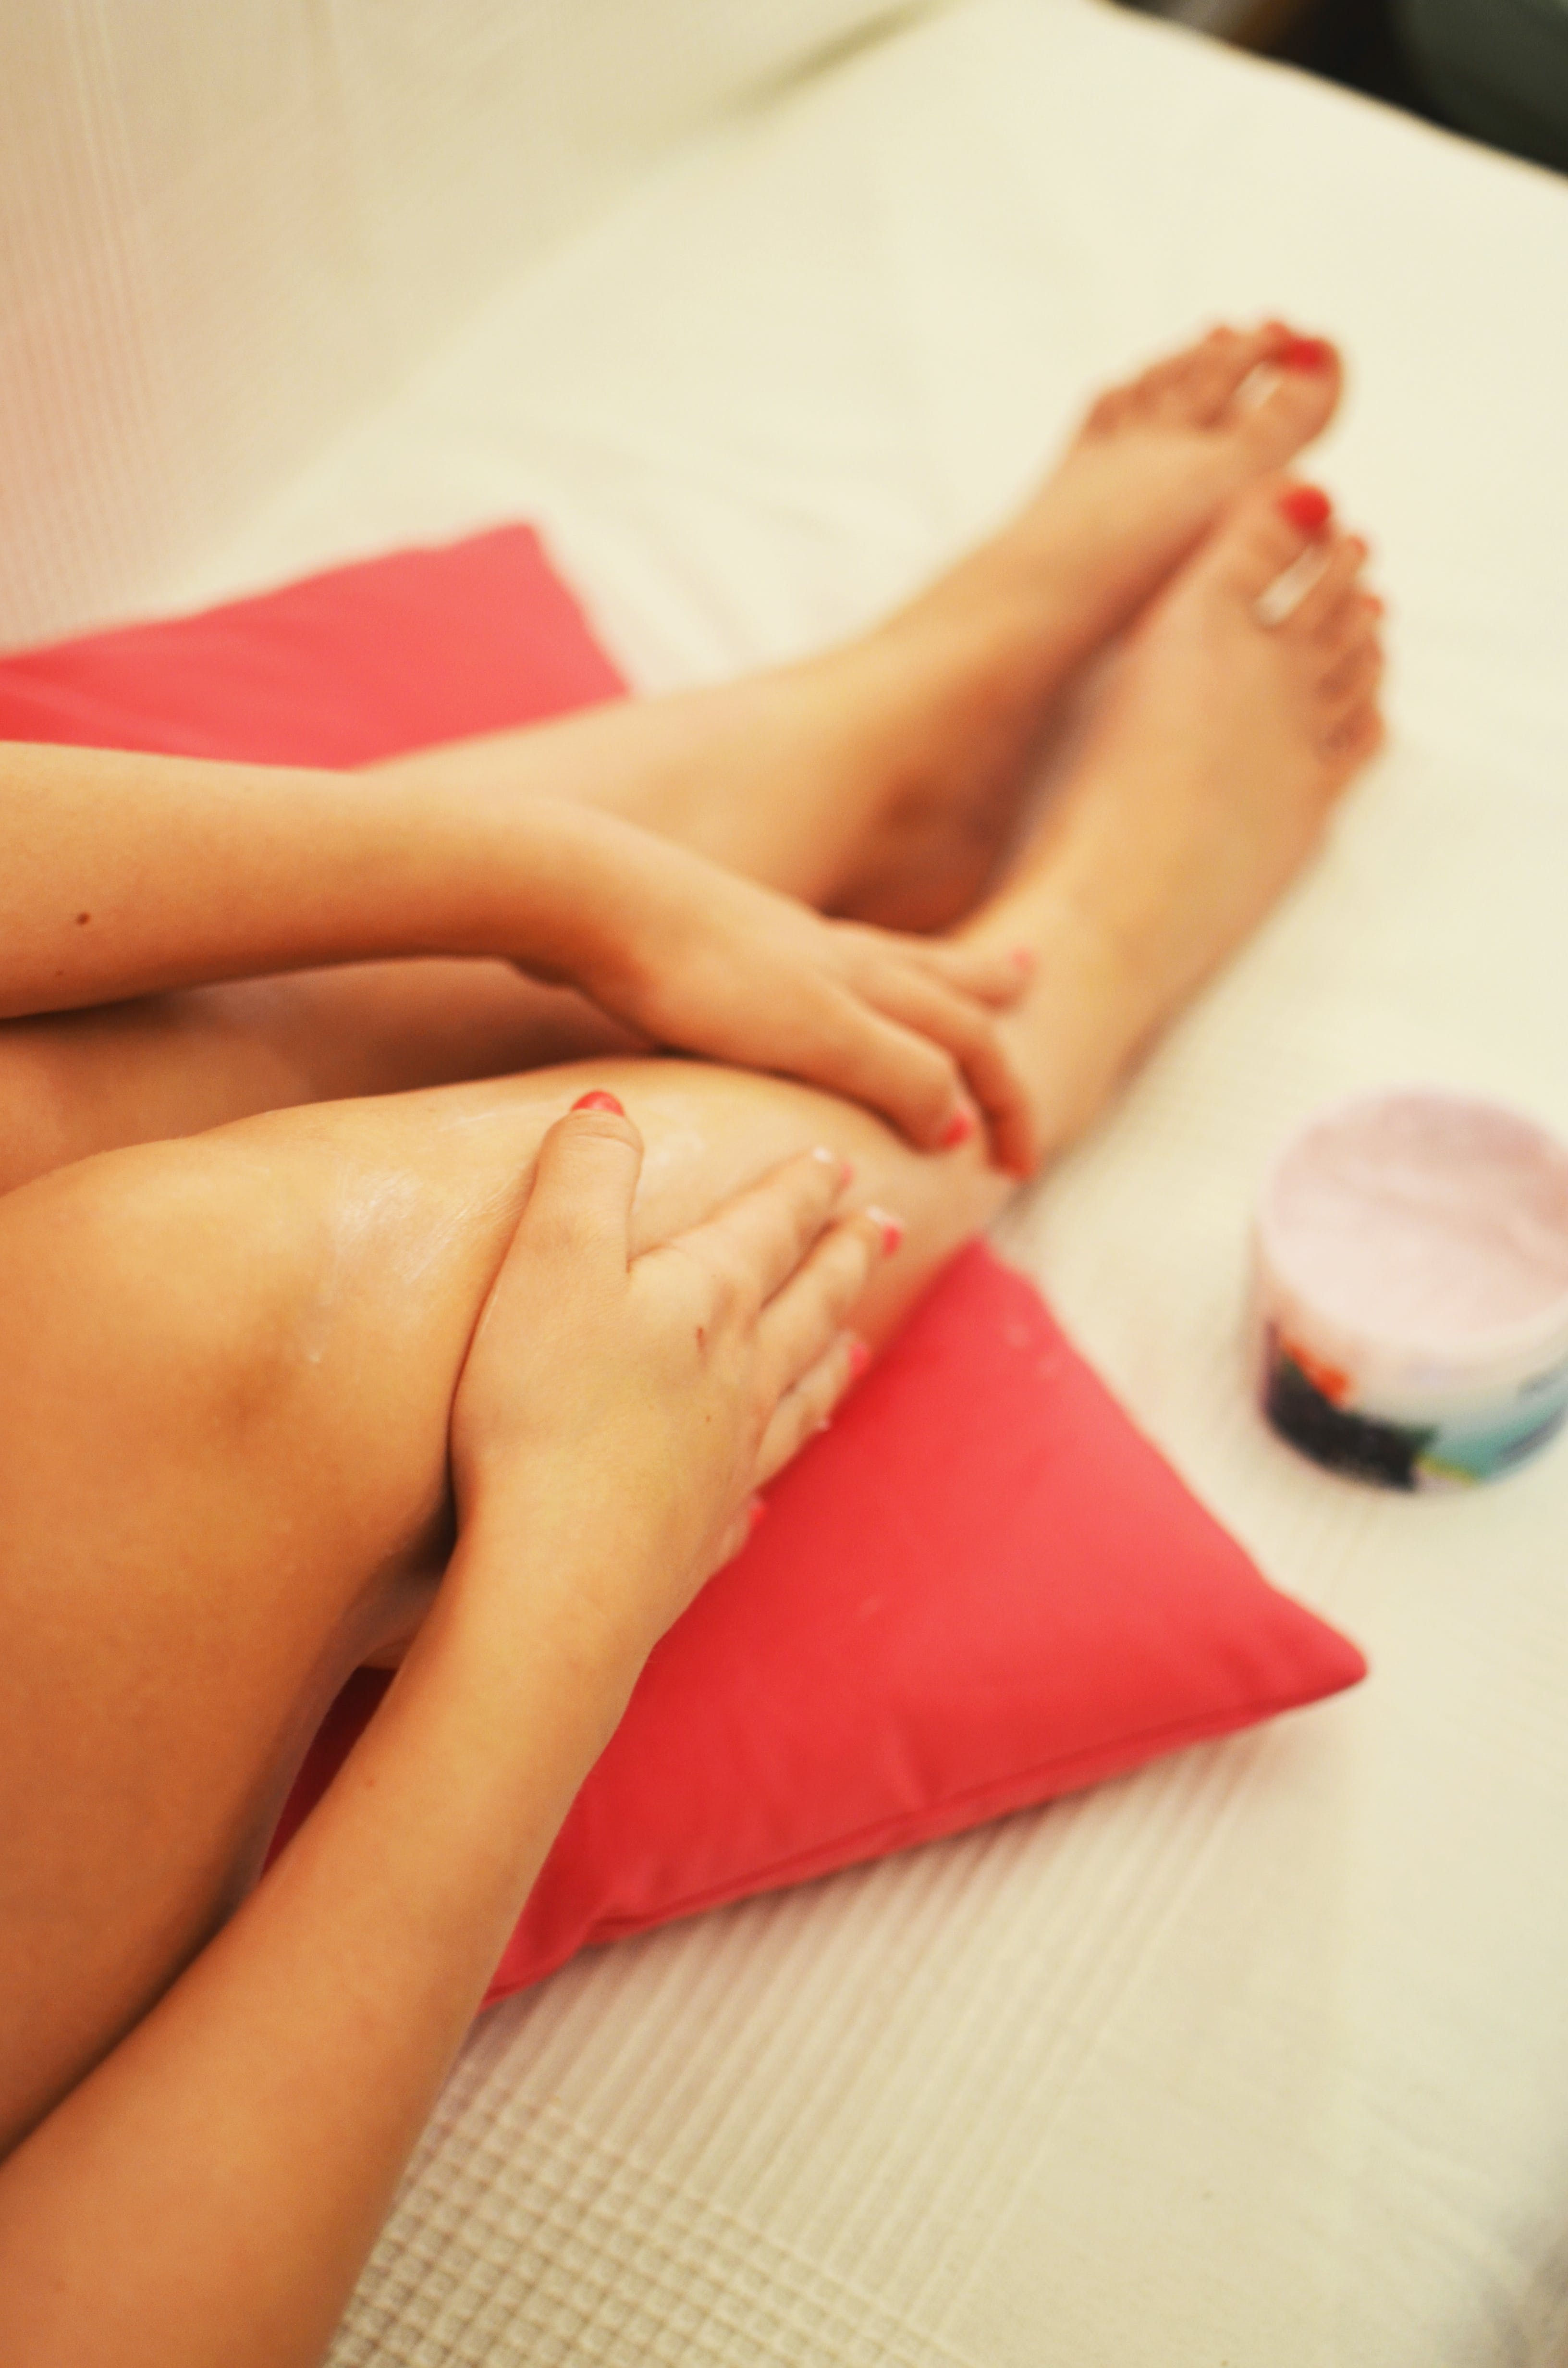 This photo shows the legs of a woman who is sitting on a red pillow on a pastel colored couch. The woman is putting on some lotion on her legs with her hands. She has red toenails. Thew whole setting makes a very relaxing impression.